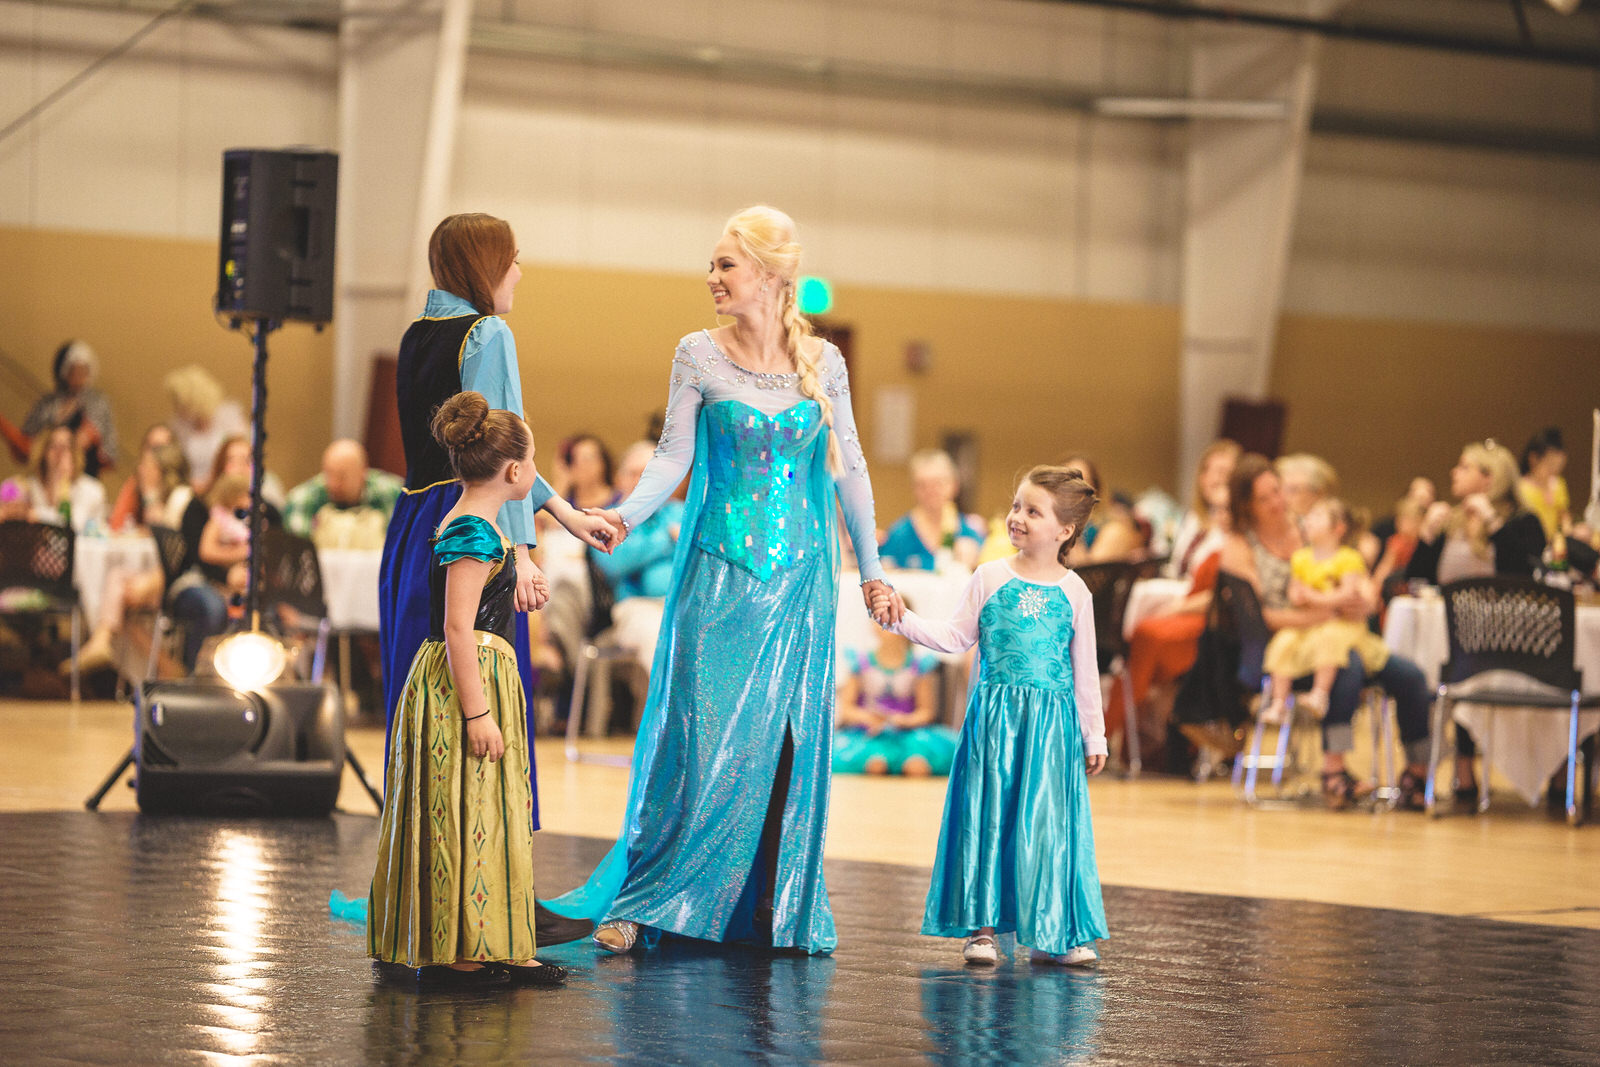 - The Fairy Tale Ball is a Royal Family KIDS Pasco fundraising event to support their mission of providing a week long summer camp, year long mentoring program and monthly club meetings for area foster children. Help Royal Family's mission of confronting abuse & changing lives by getting your tickets today!